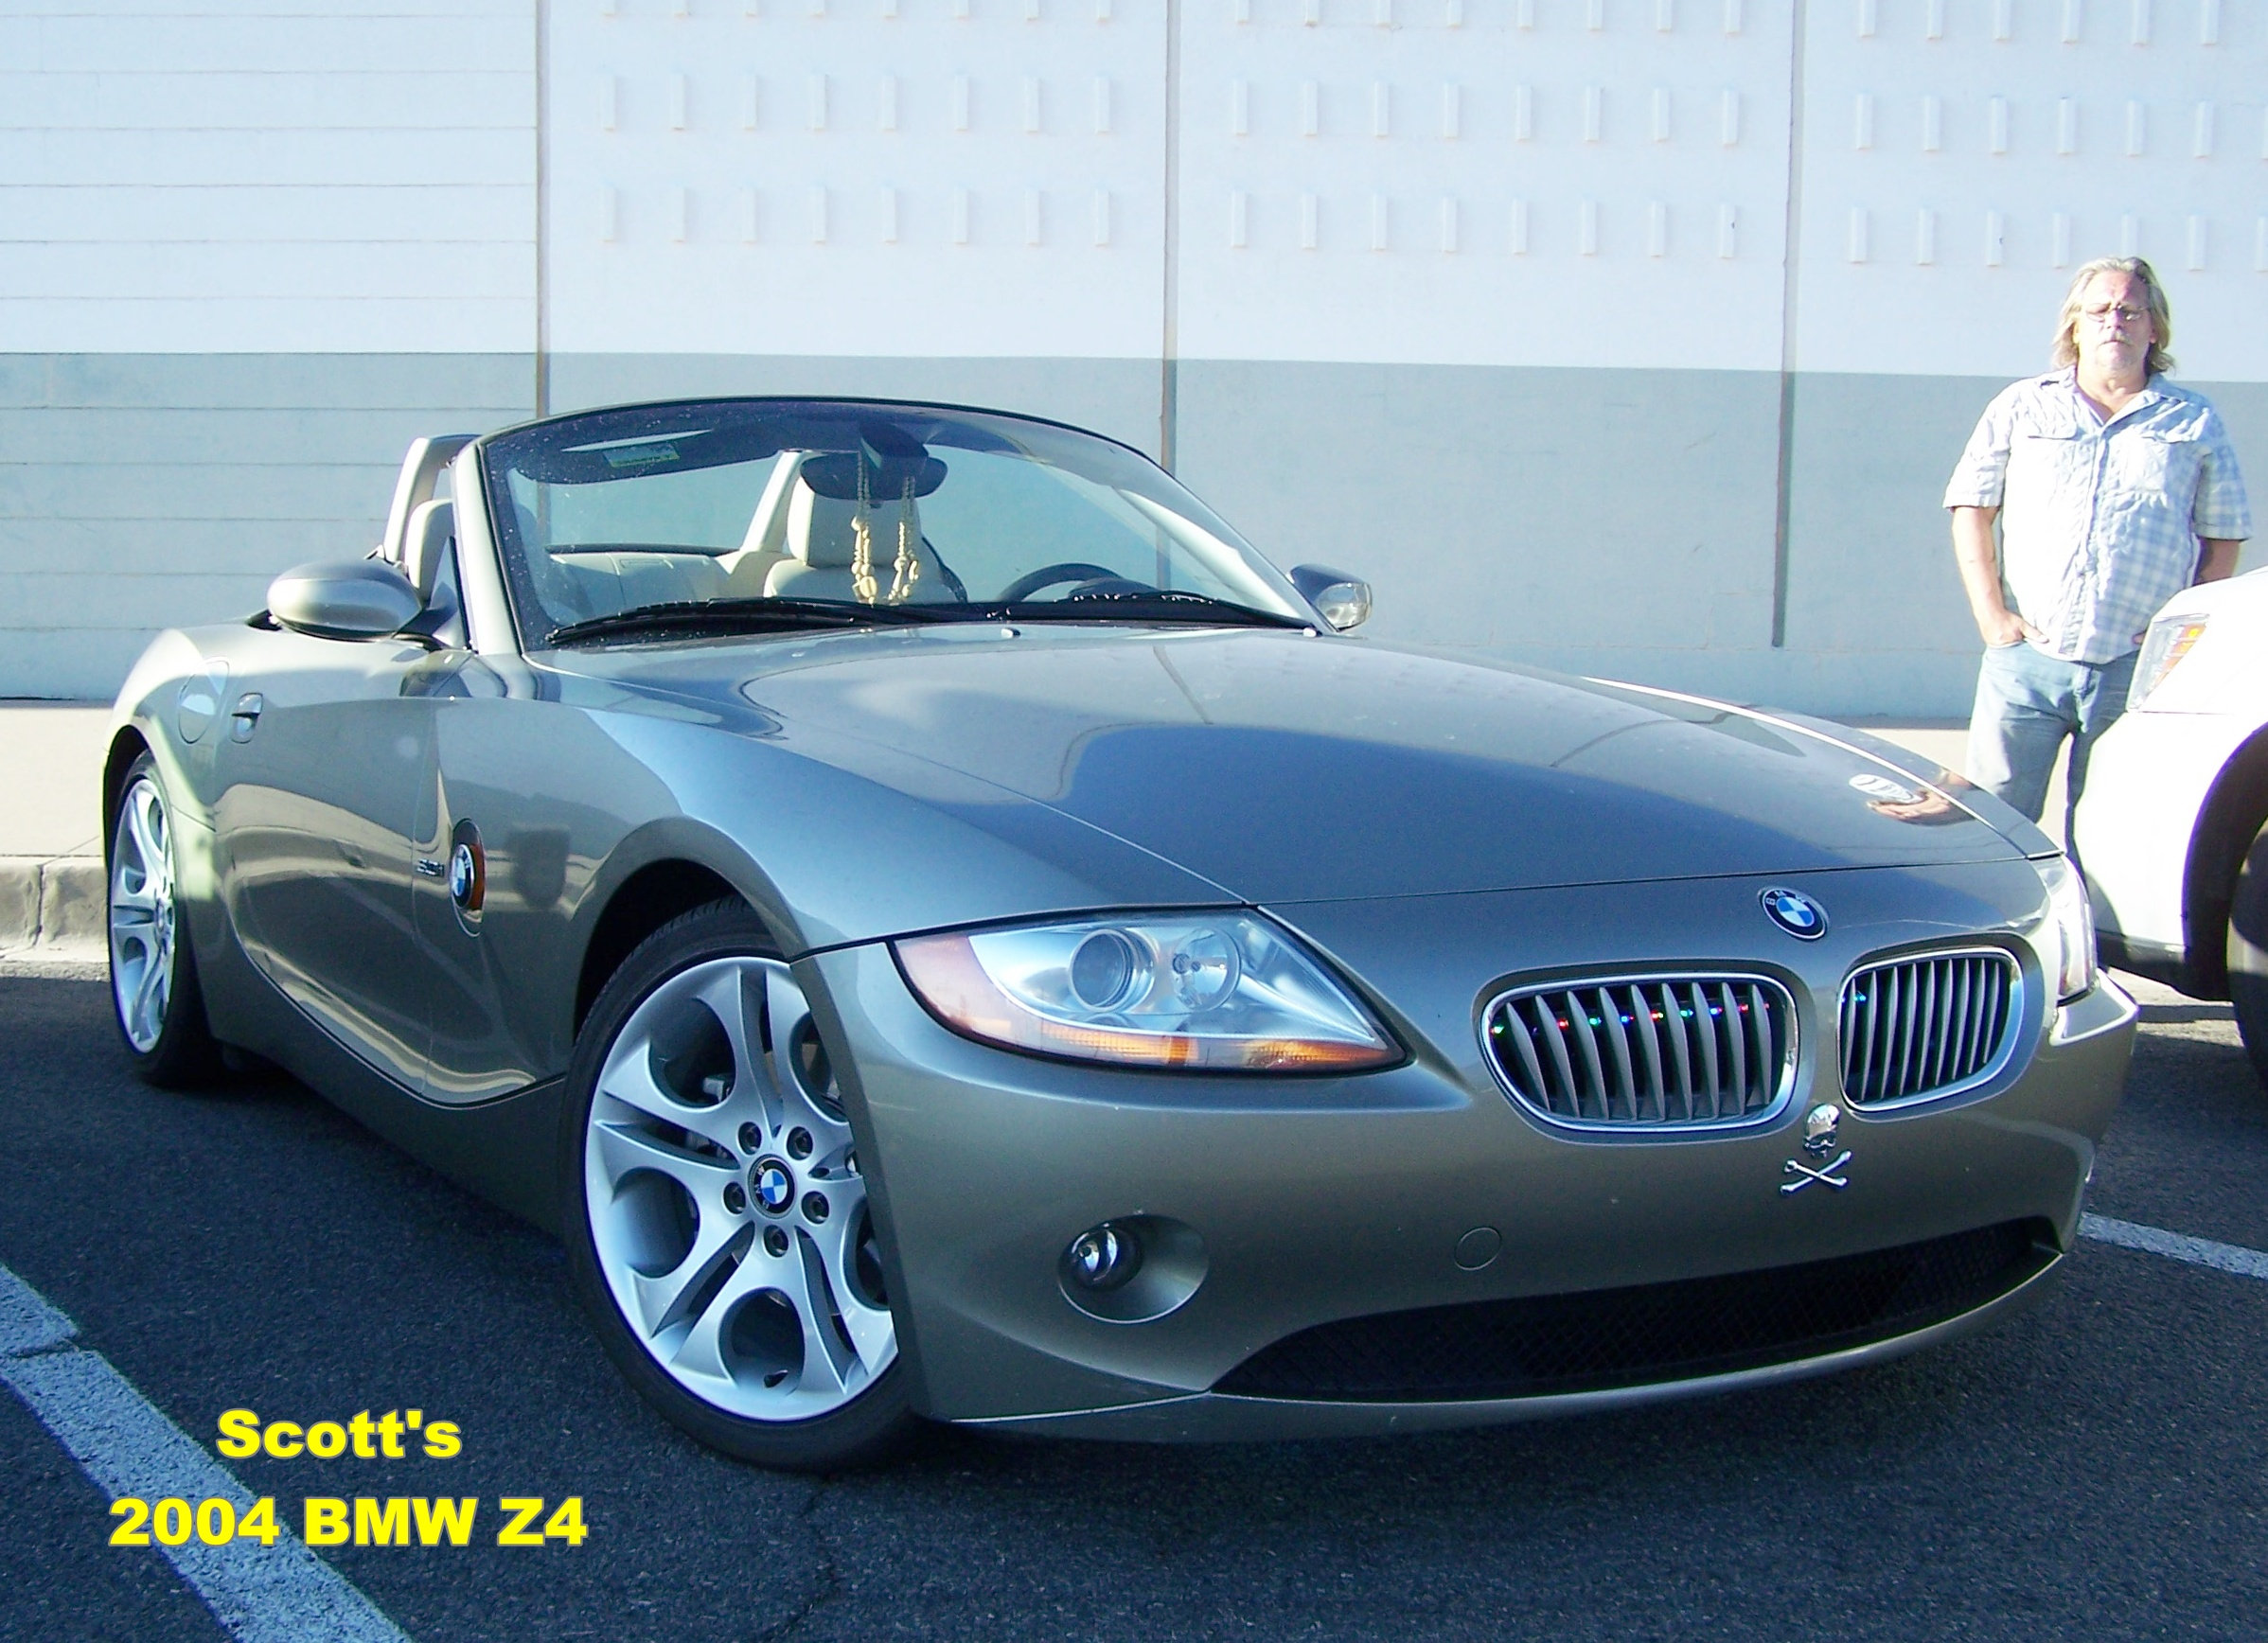 2004bmwz4scottbuffington.jpg